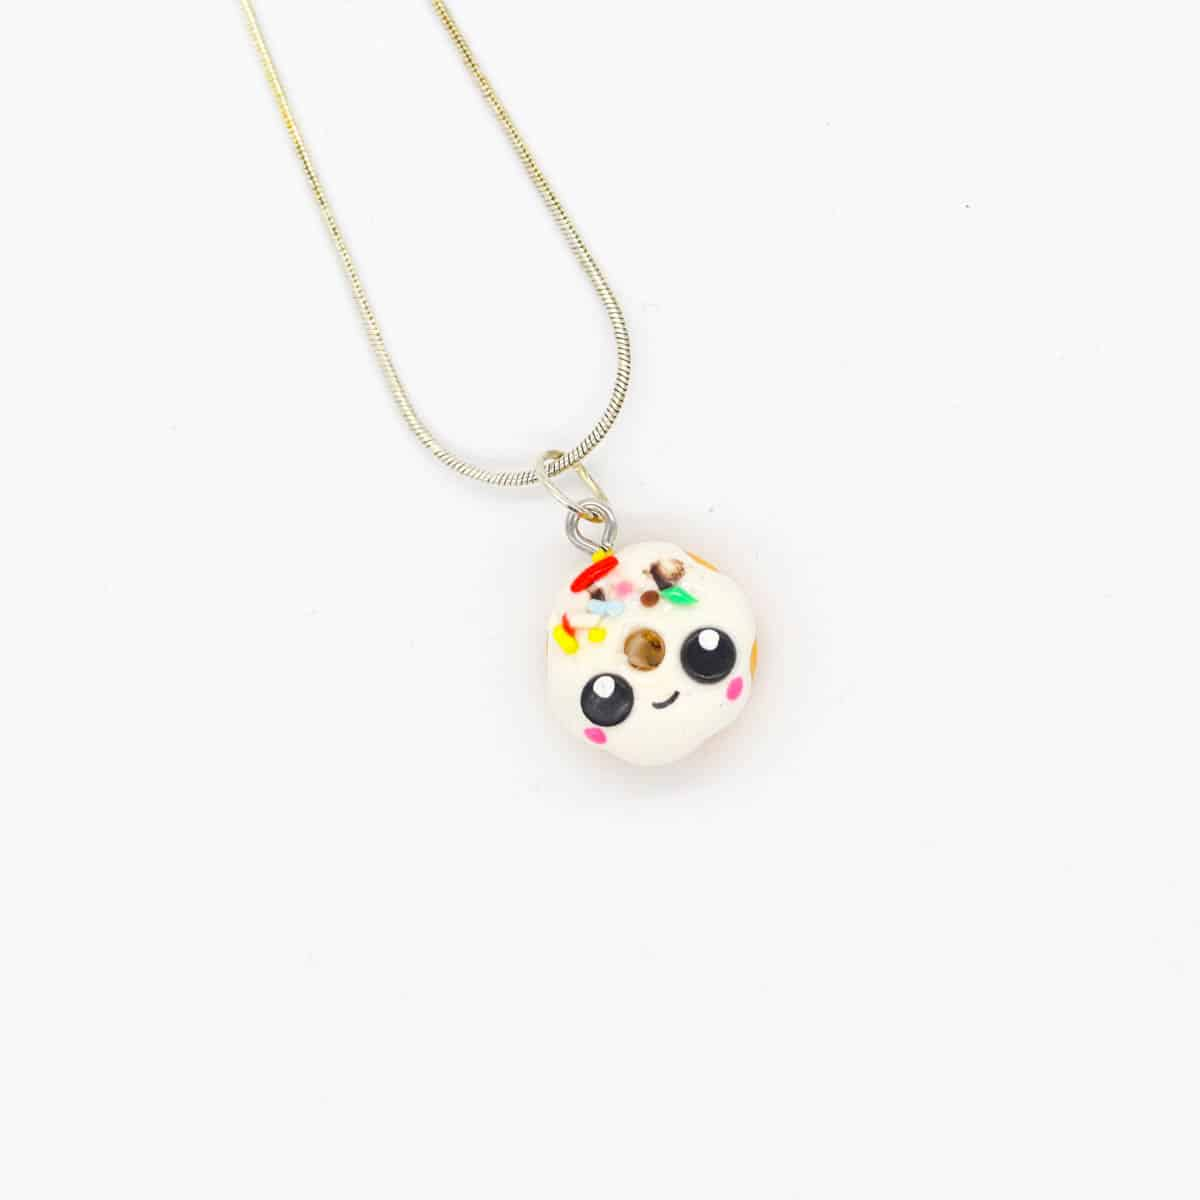 Donut White Happy Necklace By Kate And Rose (Fitzroy) $25